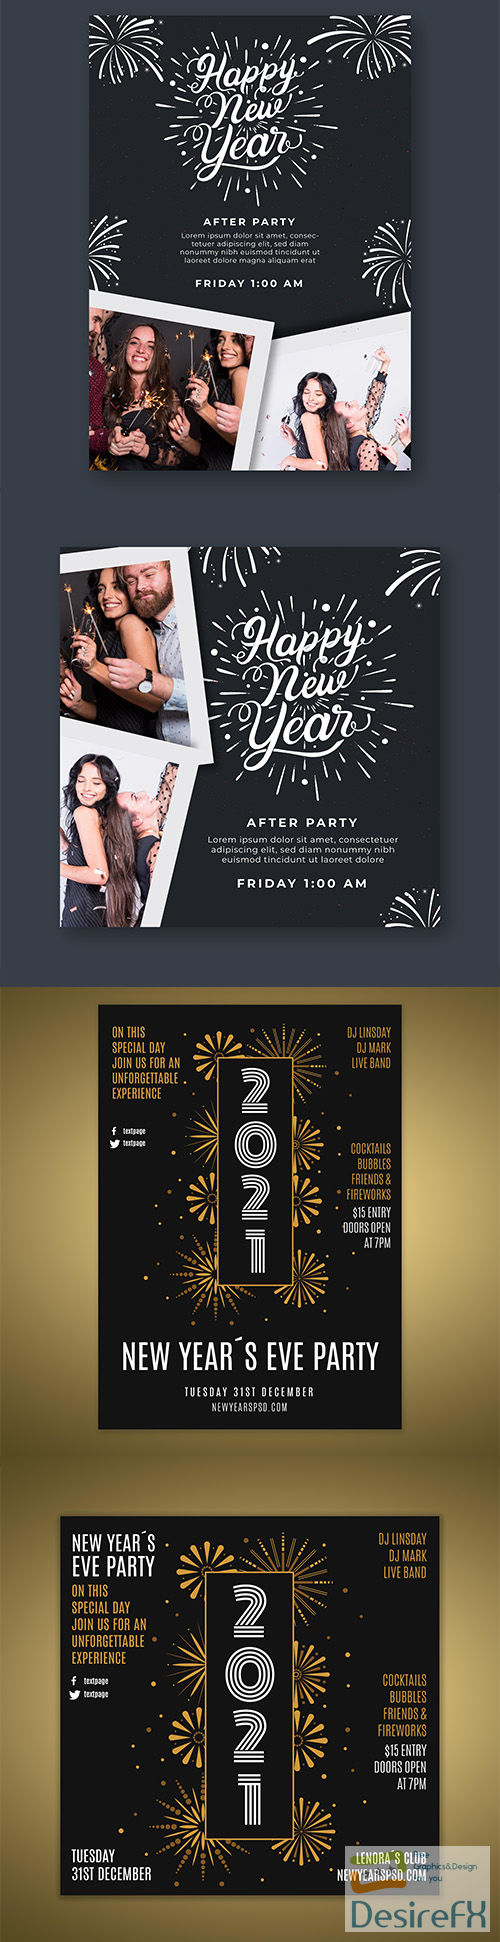 Flyer template for new years party